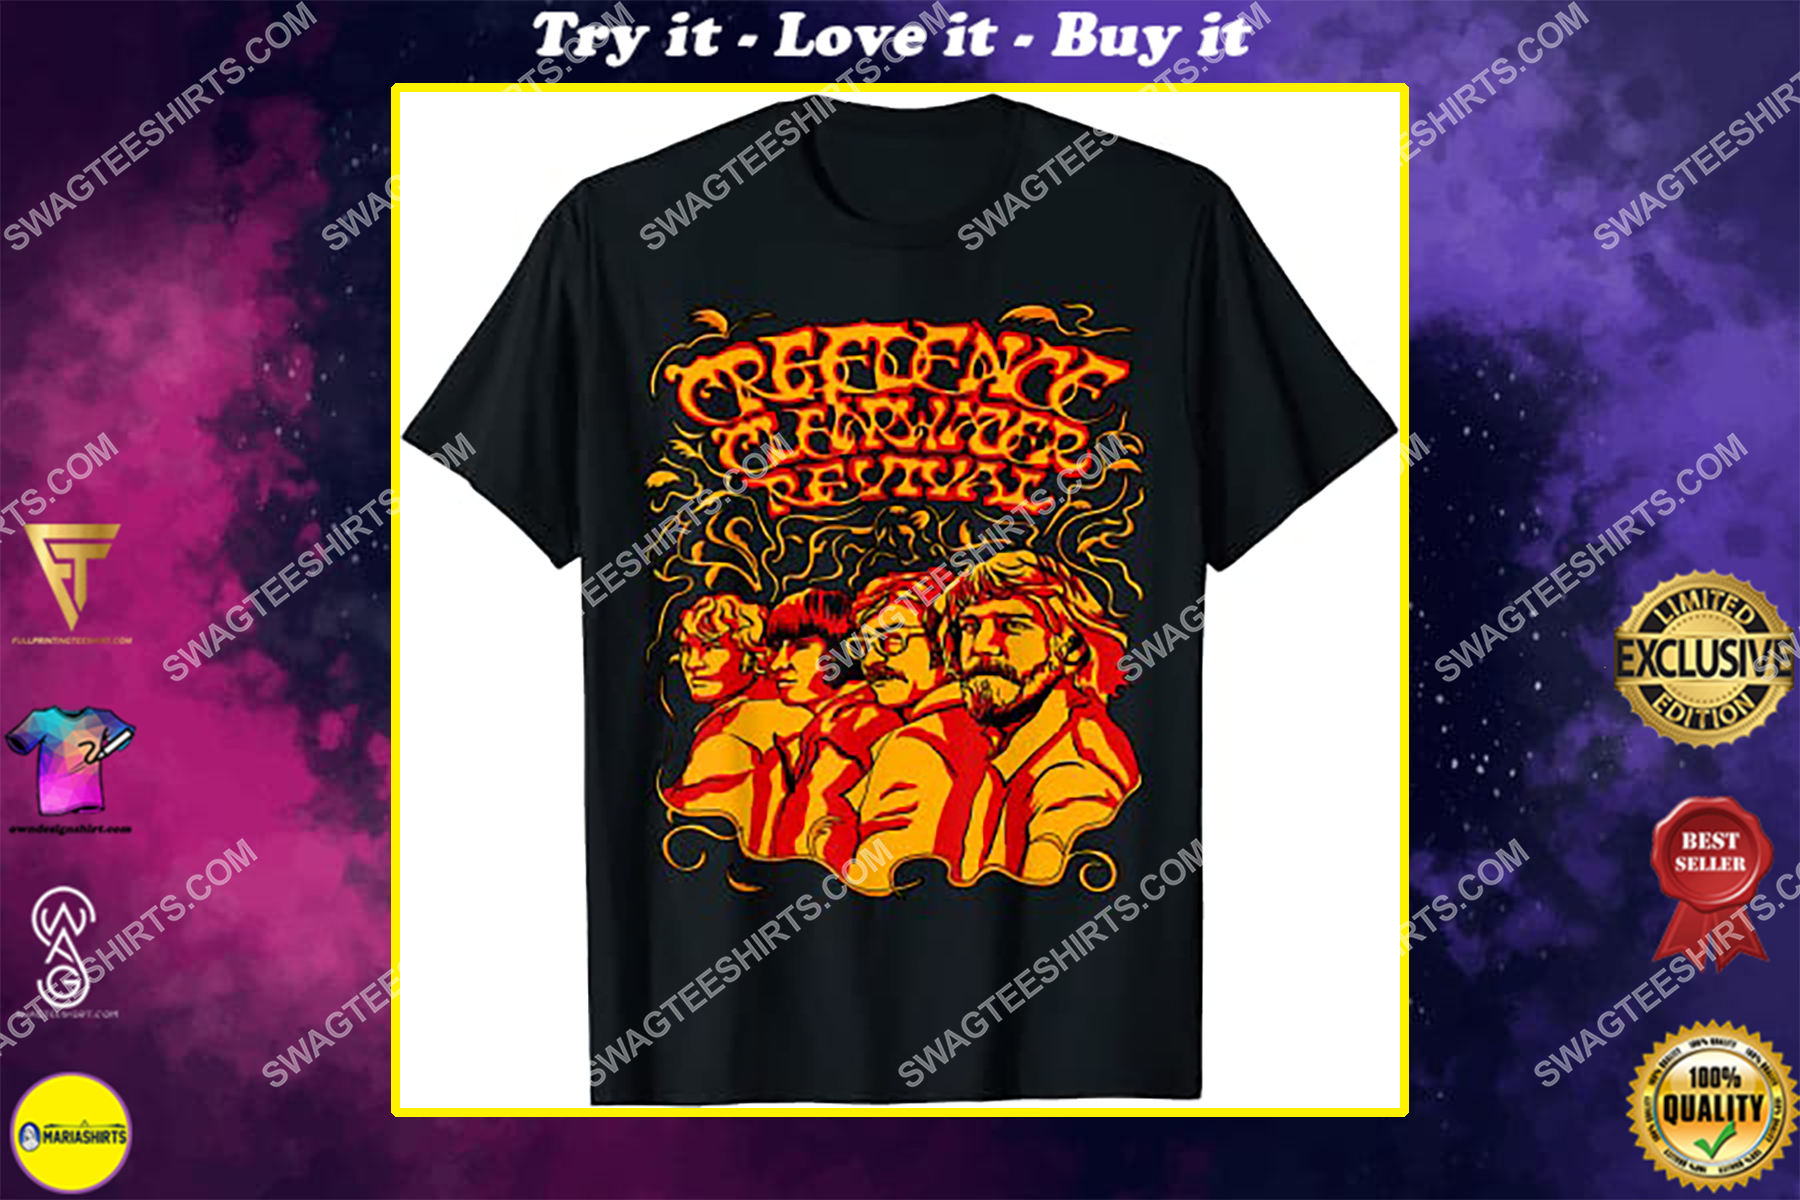 vintage creedence clearwater revival band shirt